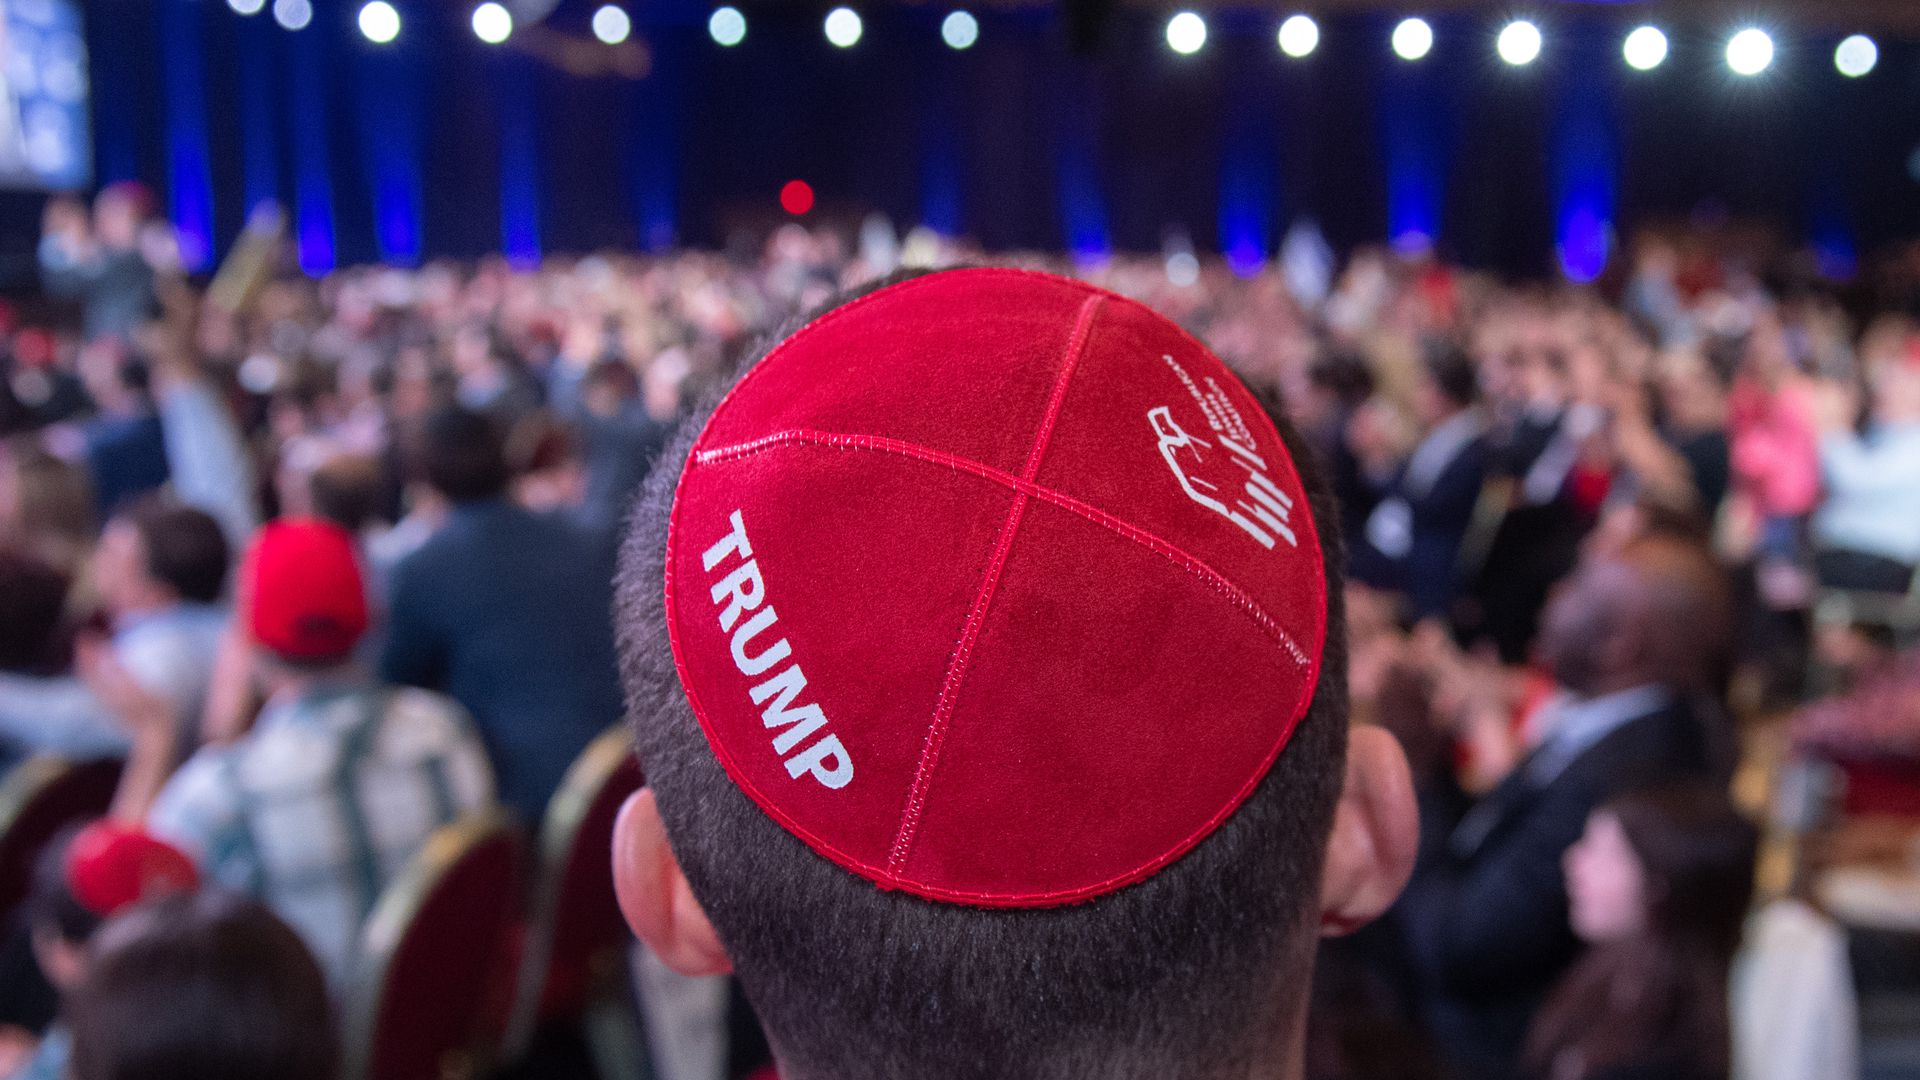 A man wears a Trump yarmulke prior to a speech by Trump during the Republican Jewish Coalition.